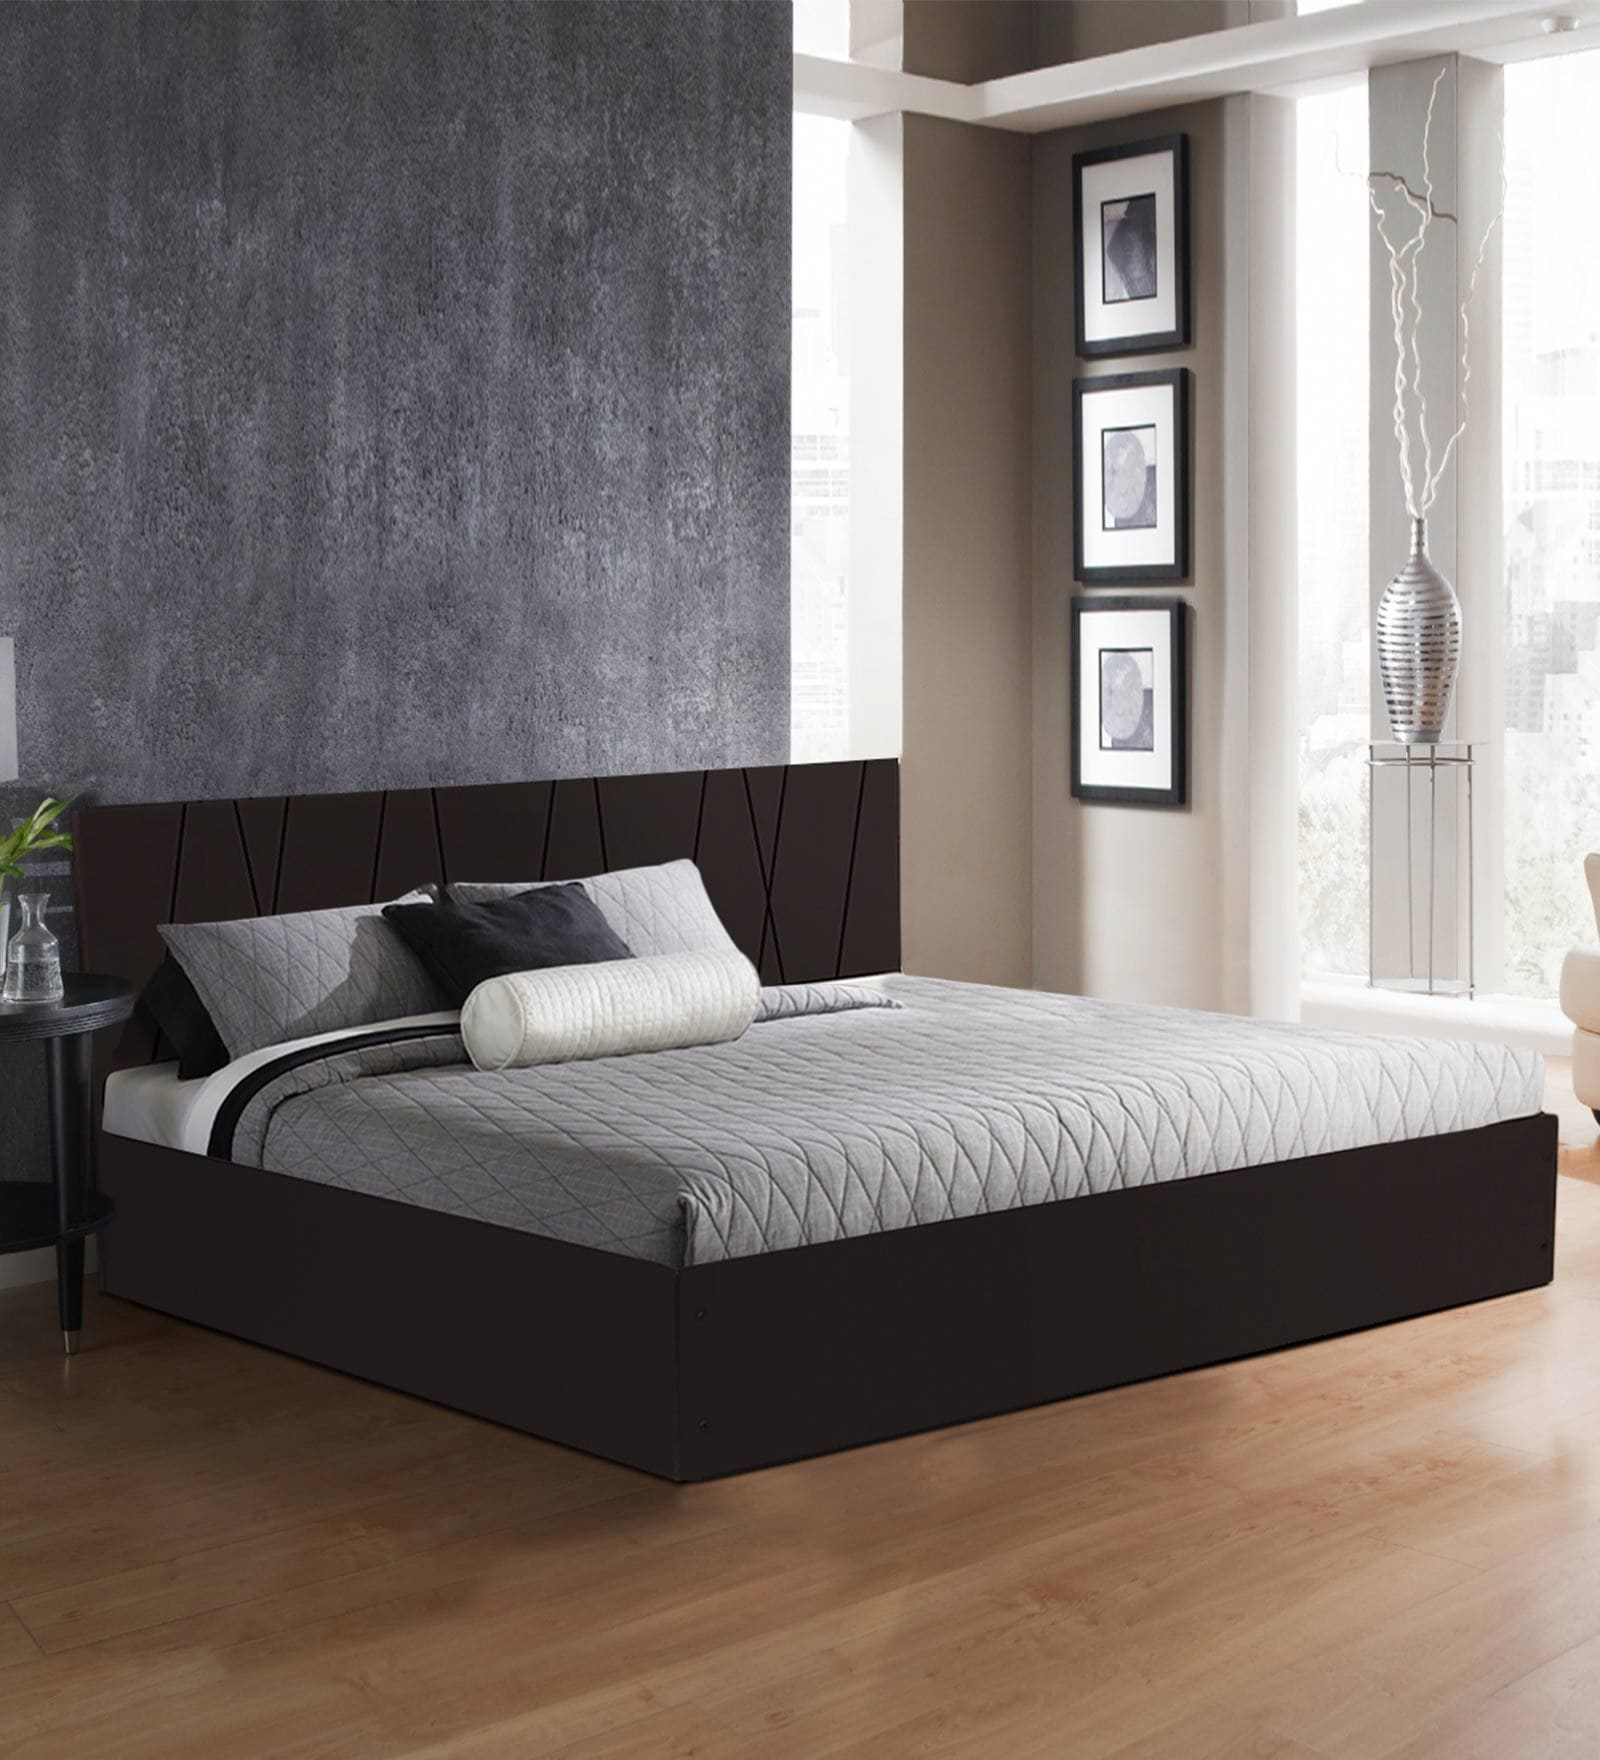 Axis King Size Bed With Storage In